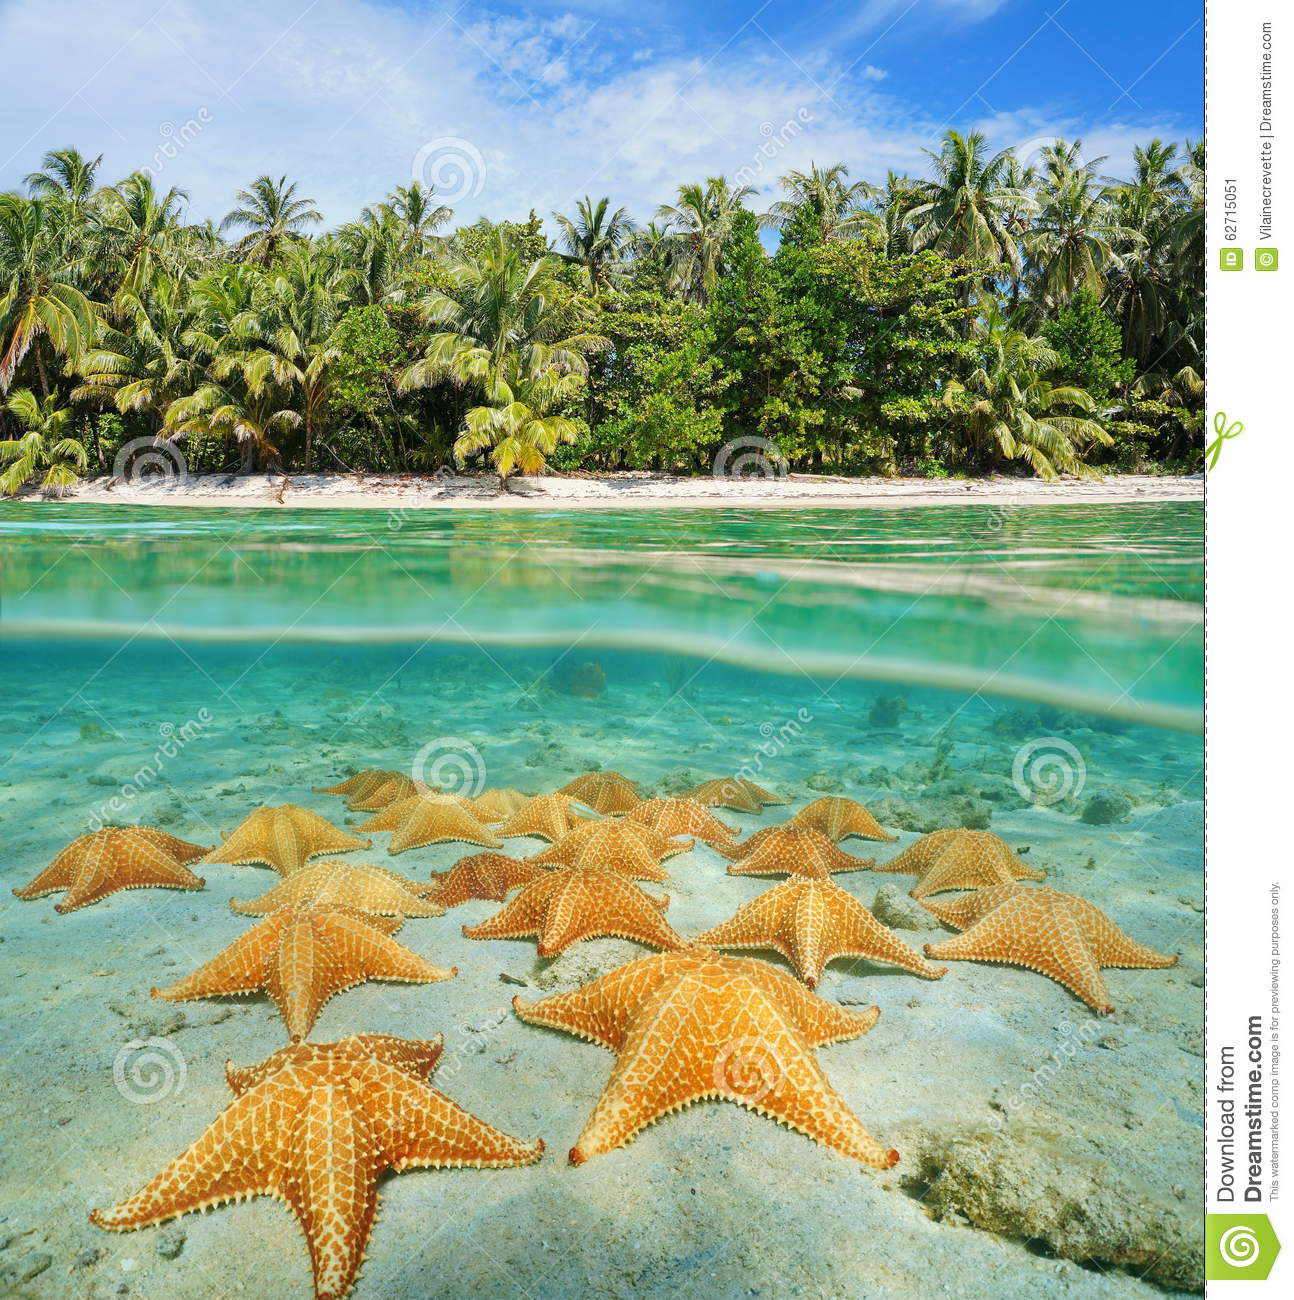 Tropical Beach And Peaceful Ocean: Tropical Shore Split With Sea Stars Underwater Stock Photo